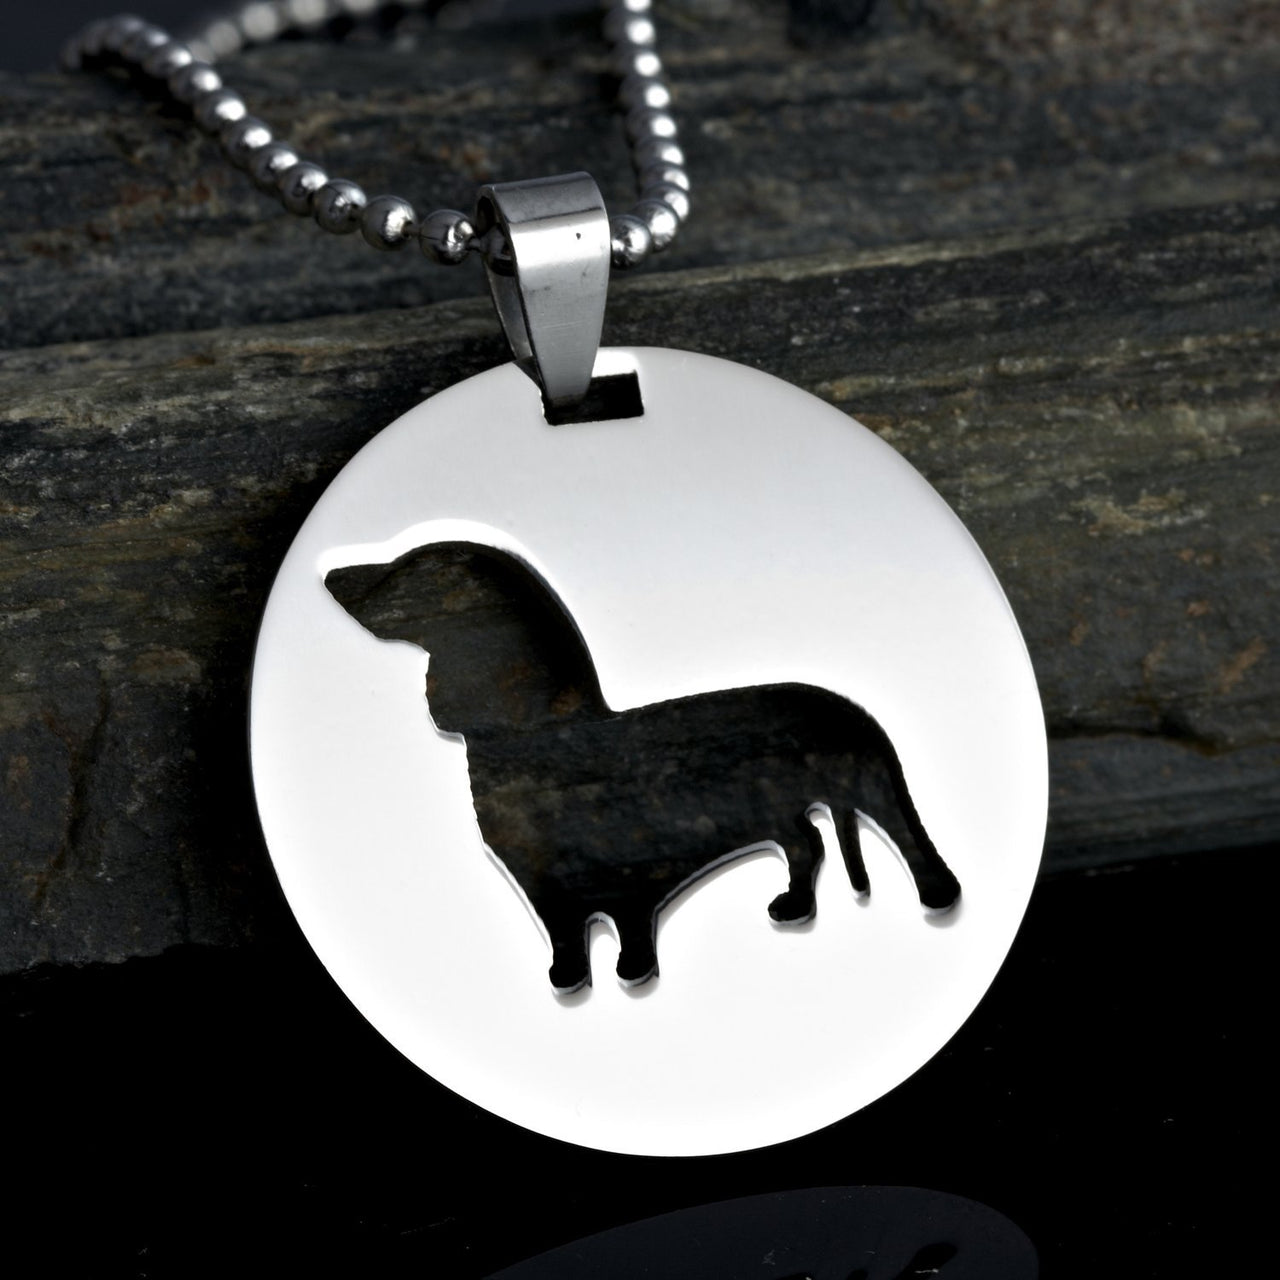 2x Stainless Steel Round Shape Dachshund Doxie Wiener Sausage Dog Silhouette Pet Dog Tag Breed Collar Charm Pendant Necklace Version 2